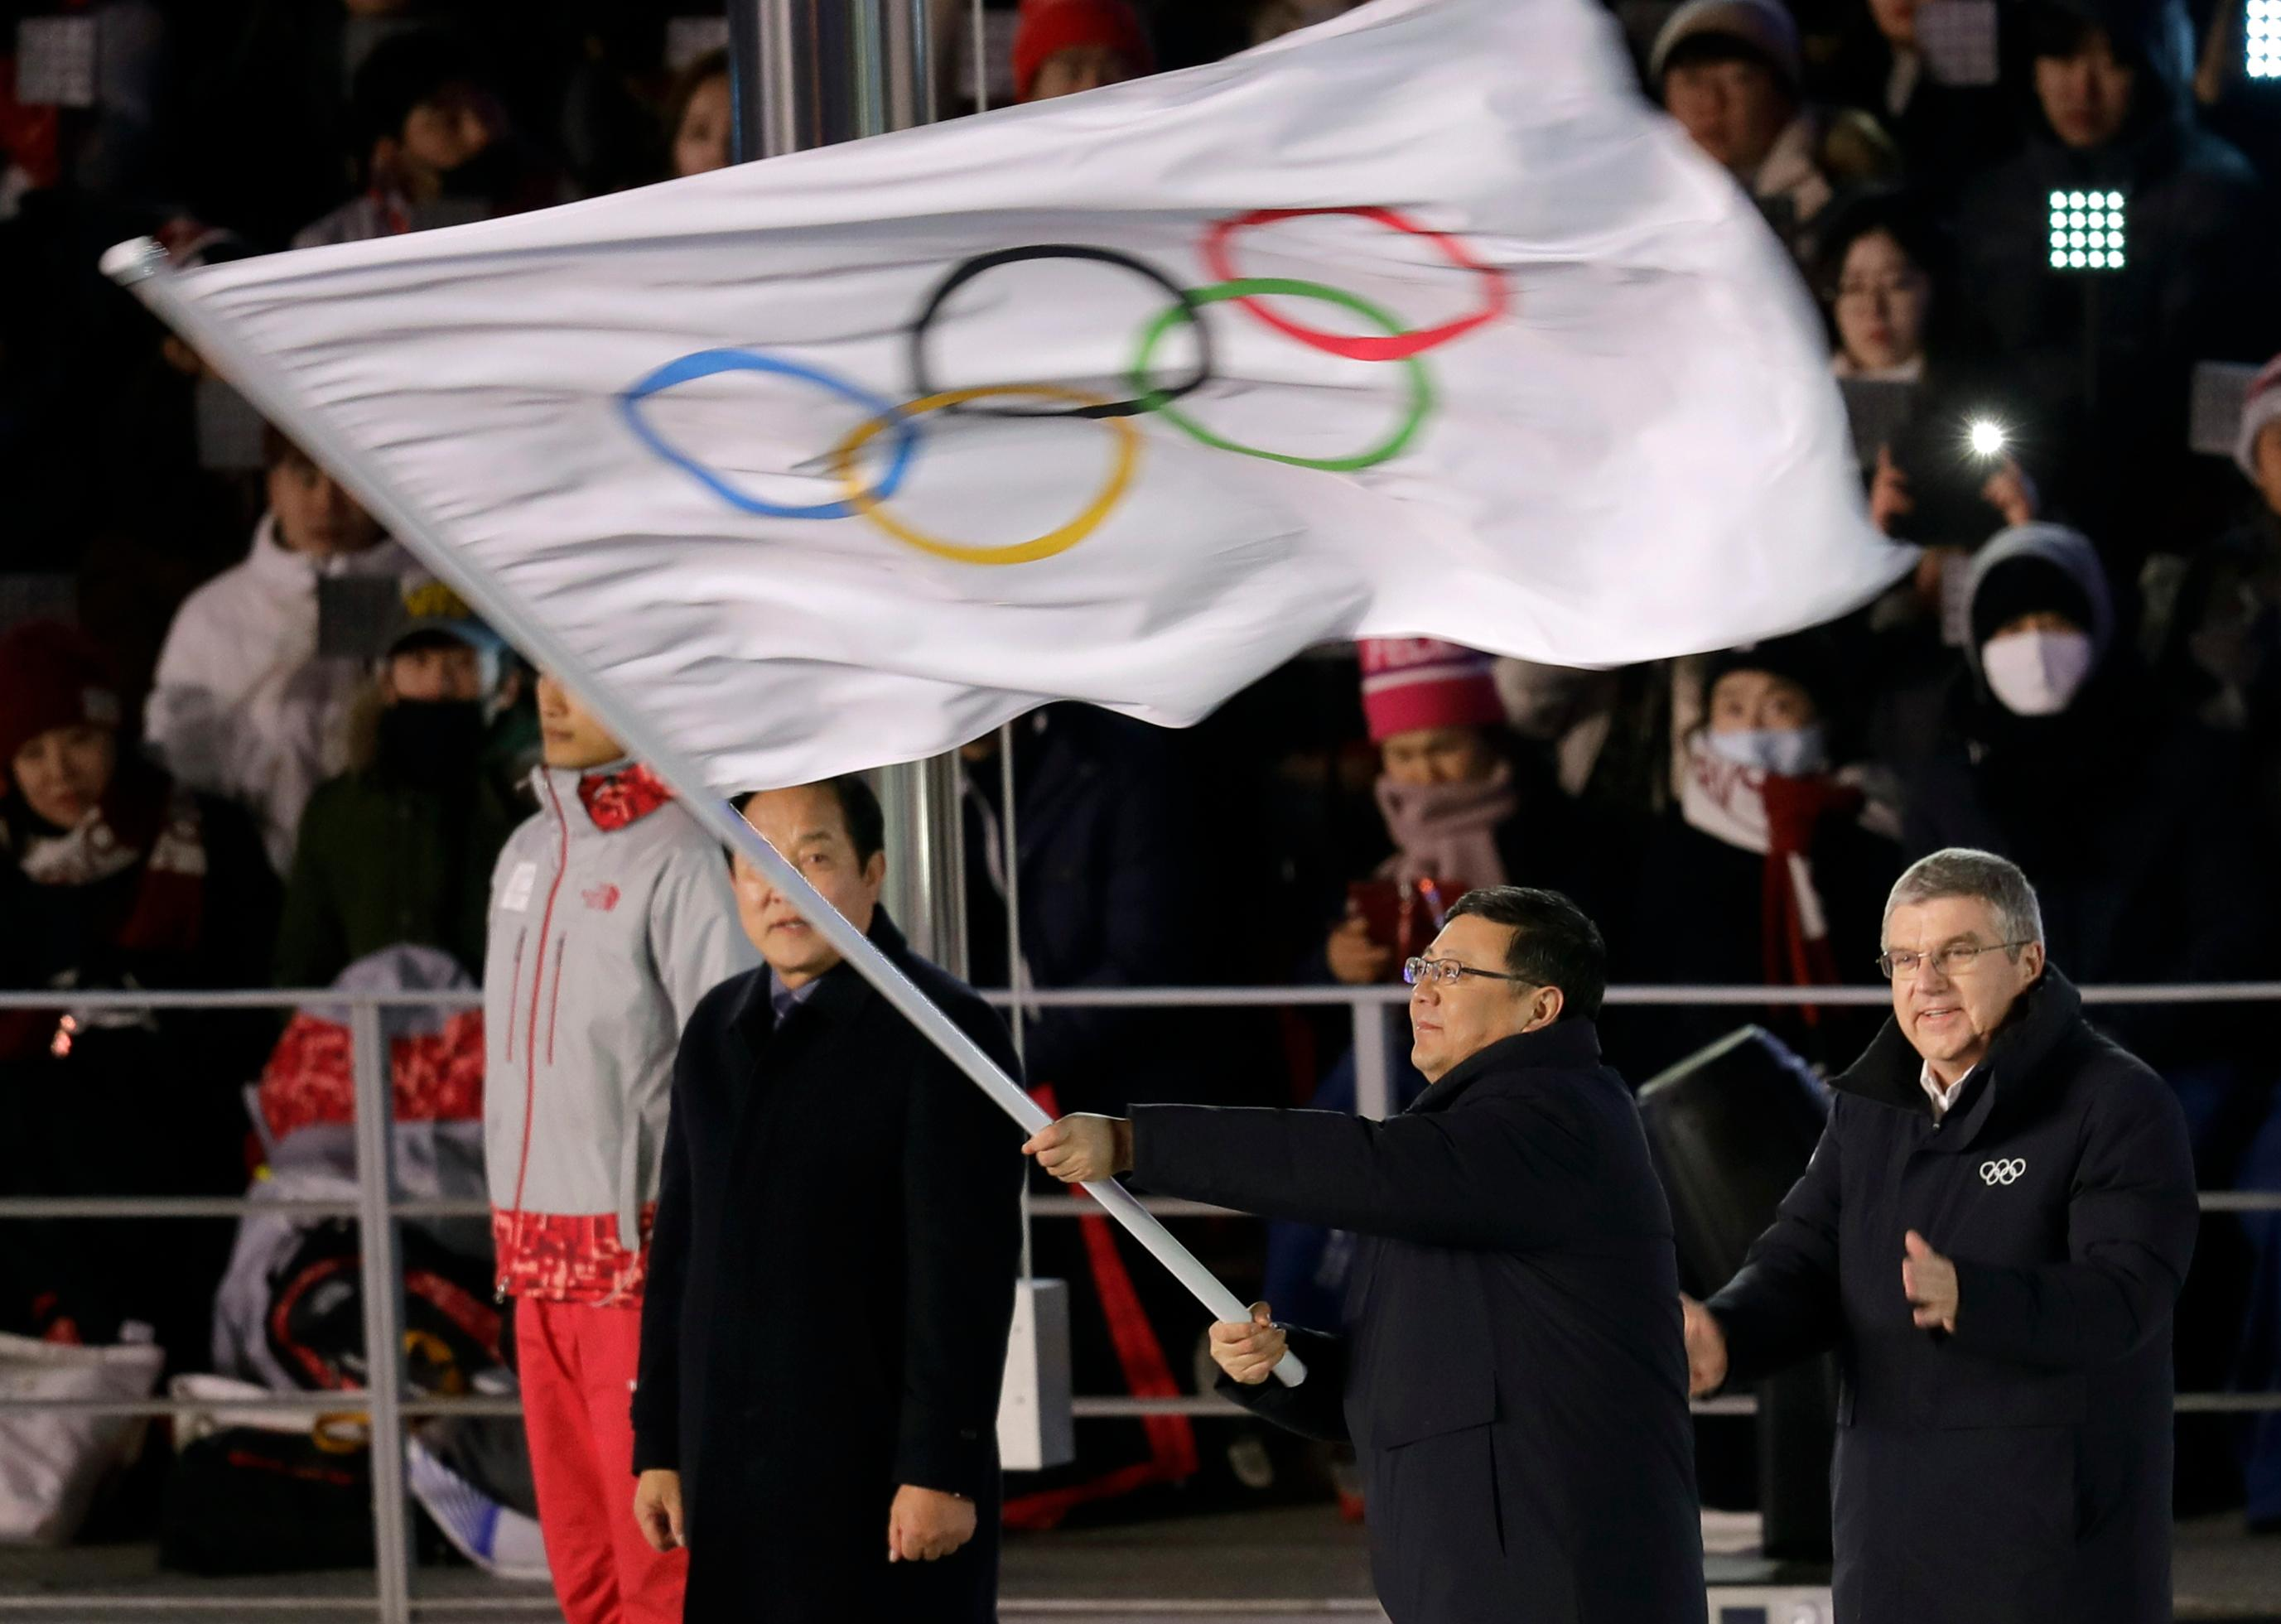 Chen Jining, mayor of Beijing waves the Olympic flag as Thomas Bach, president of the International Olympic Committee watches during the closing ceremony of the 2018 Winter Olympics in Pyeongchang, South Korea, Sunday, Feb. 25, 2018. (AP Photo/Michael Probst)